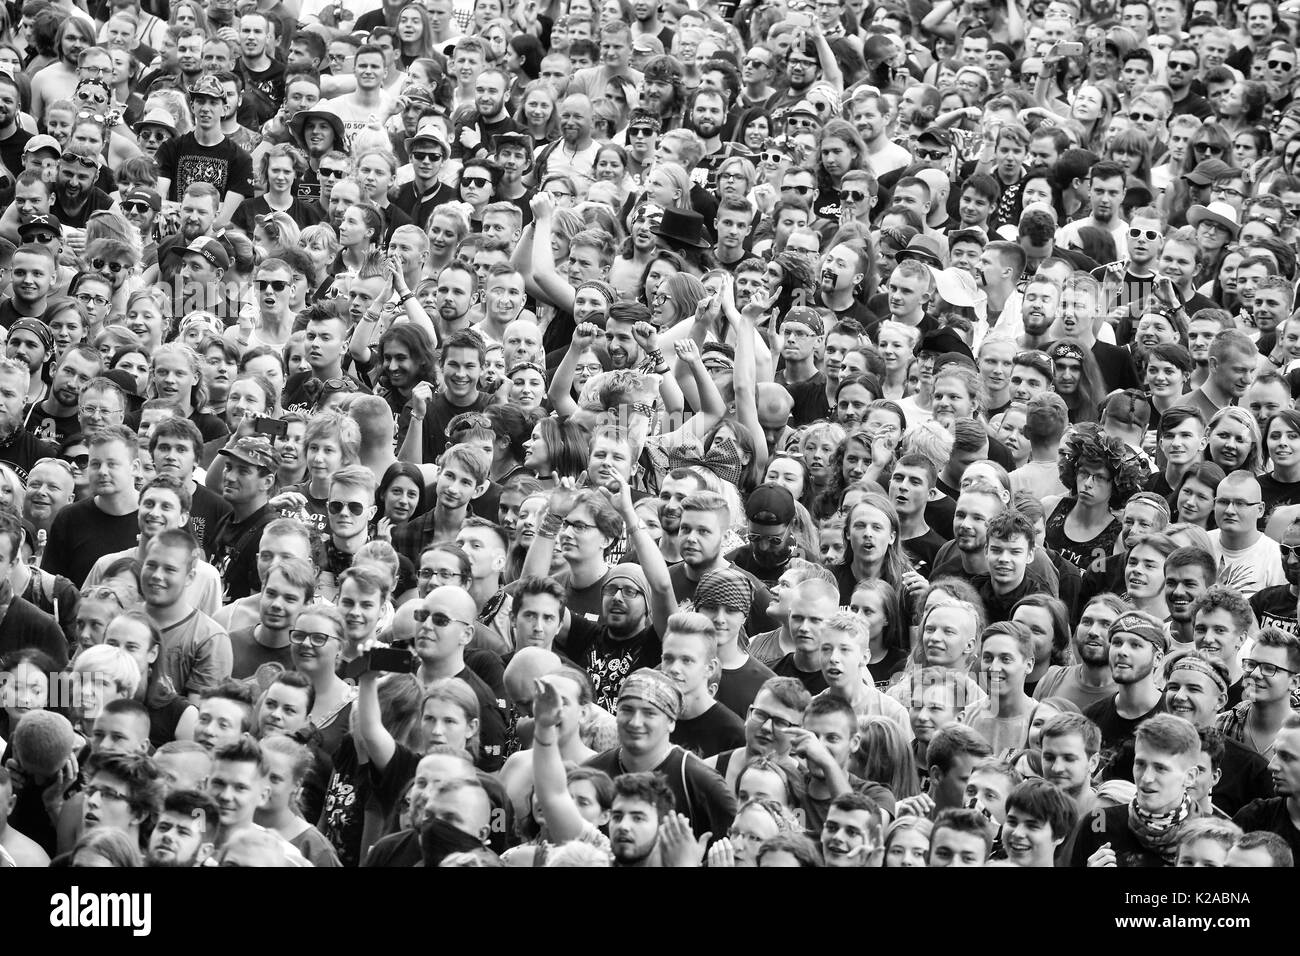 Kostrzyn, Poland - August 05, 2017: Applauding crowd at a concert during the 23rd Woodstock Festival Poland. - Stock Image